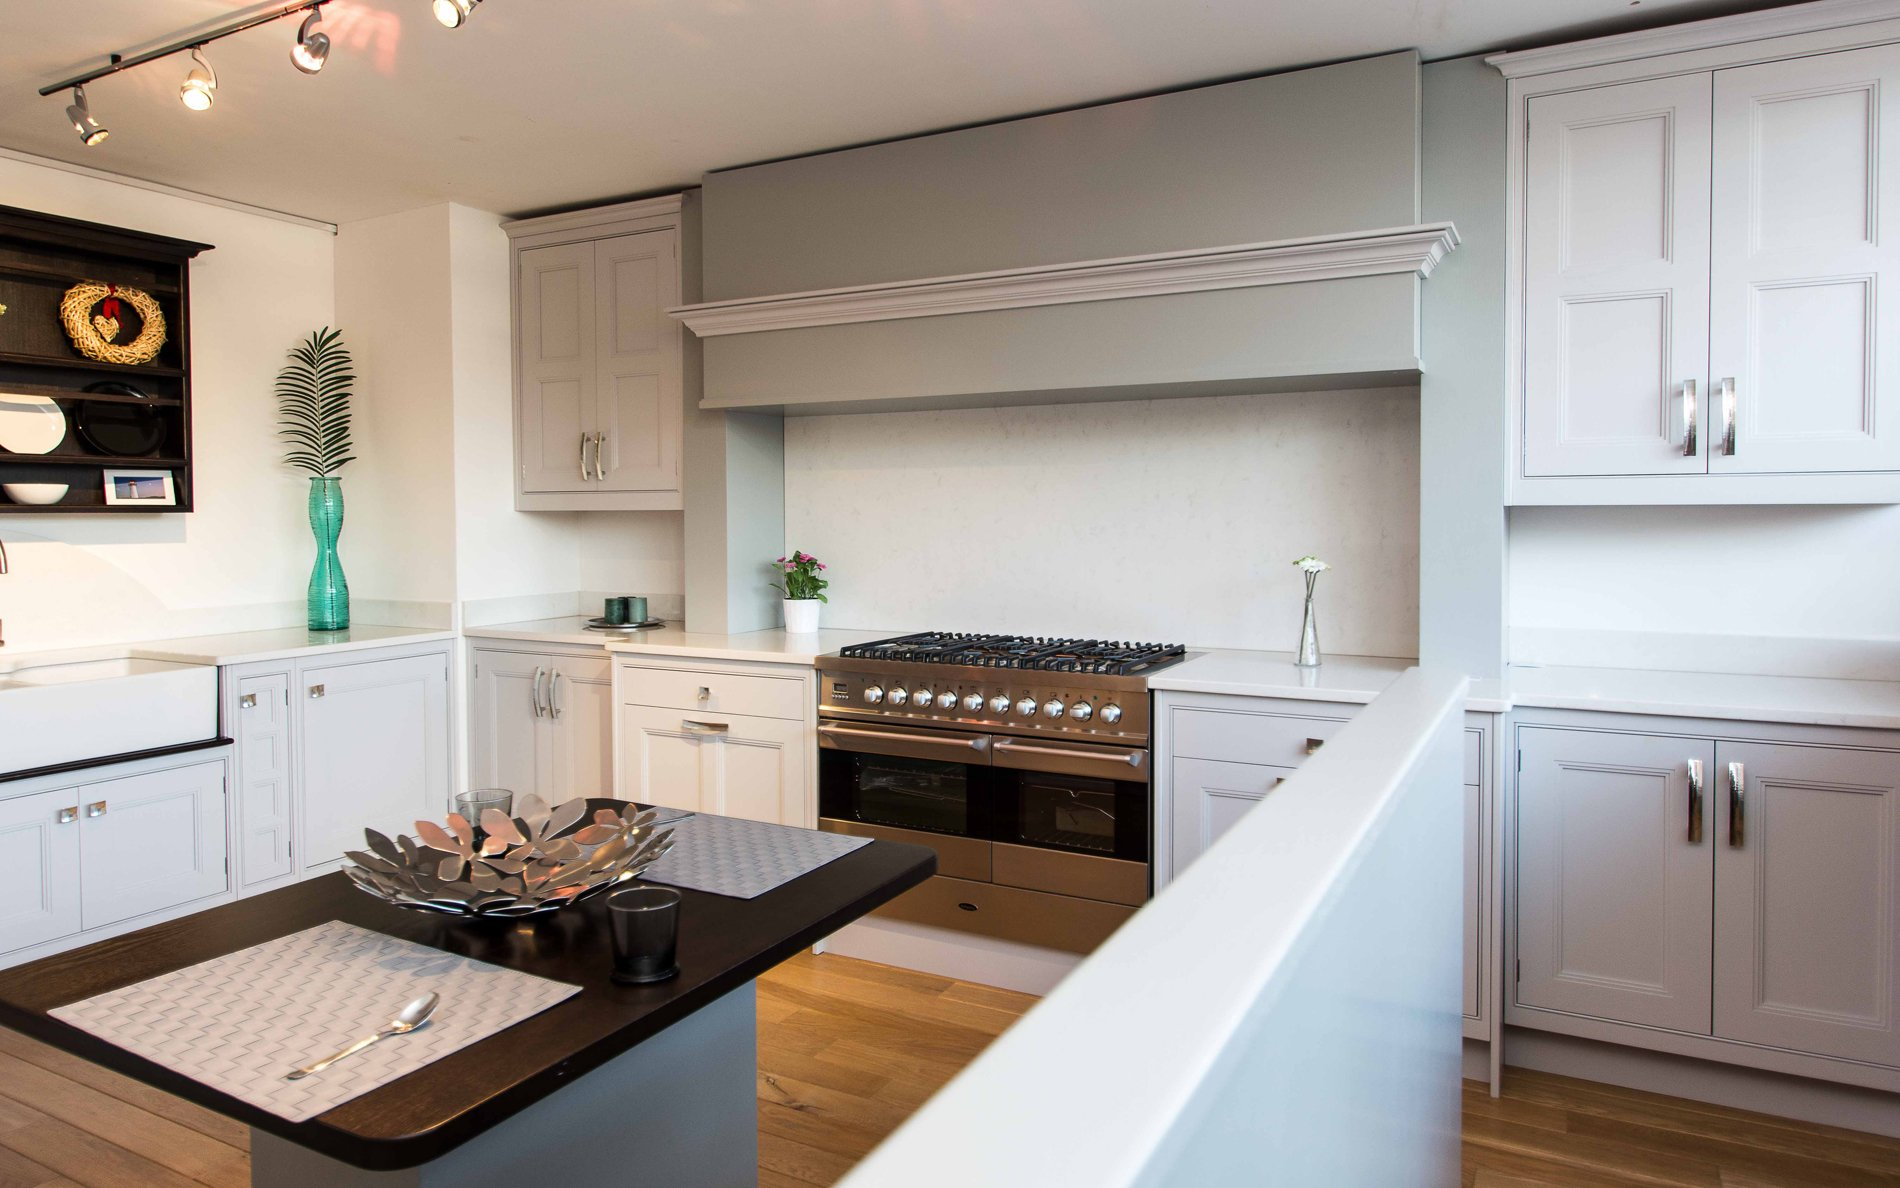 Transform Bespoke Handmade Traditional Kitchen Range Kitchen